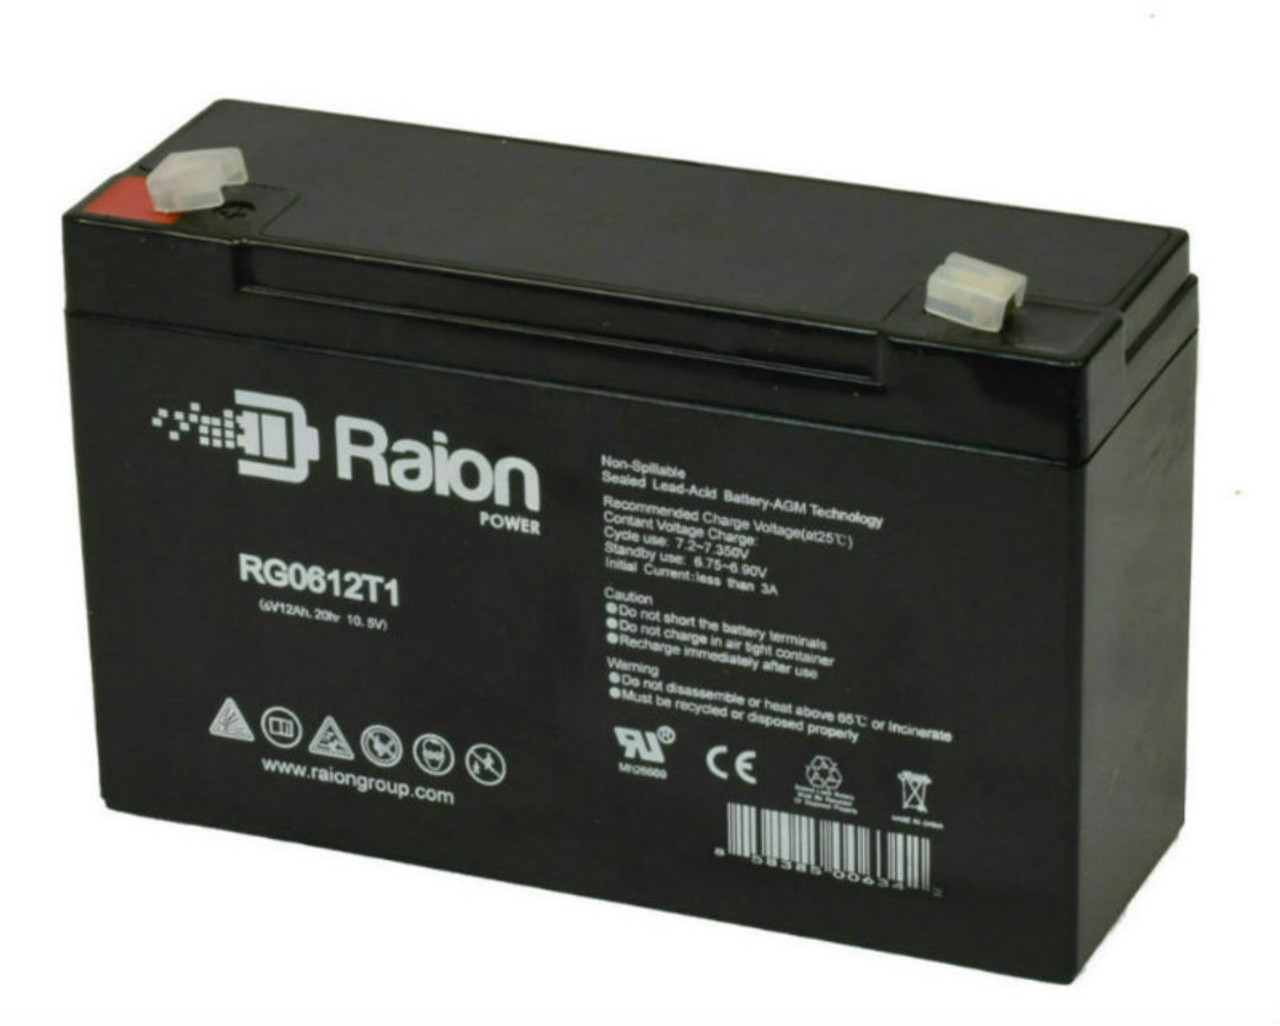 Raion Power RG06120T1 Replacement Battery Pack for Sure-Lites PPHX emergency light